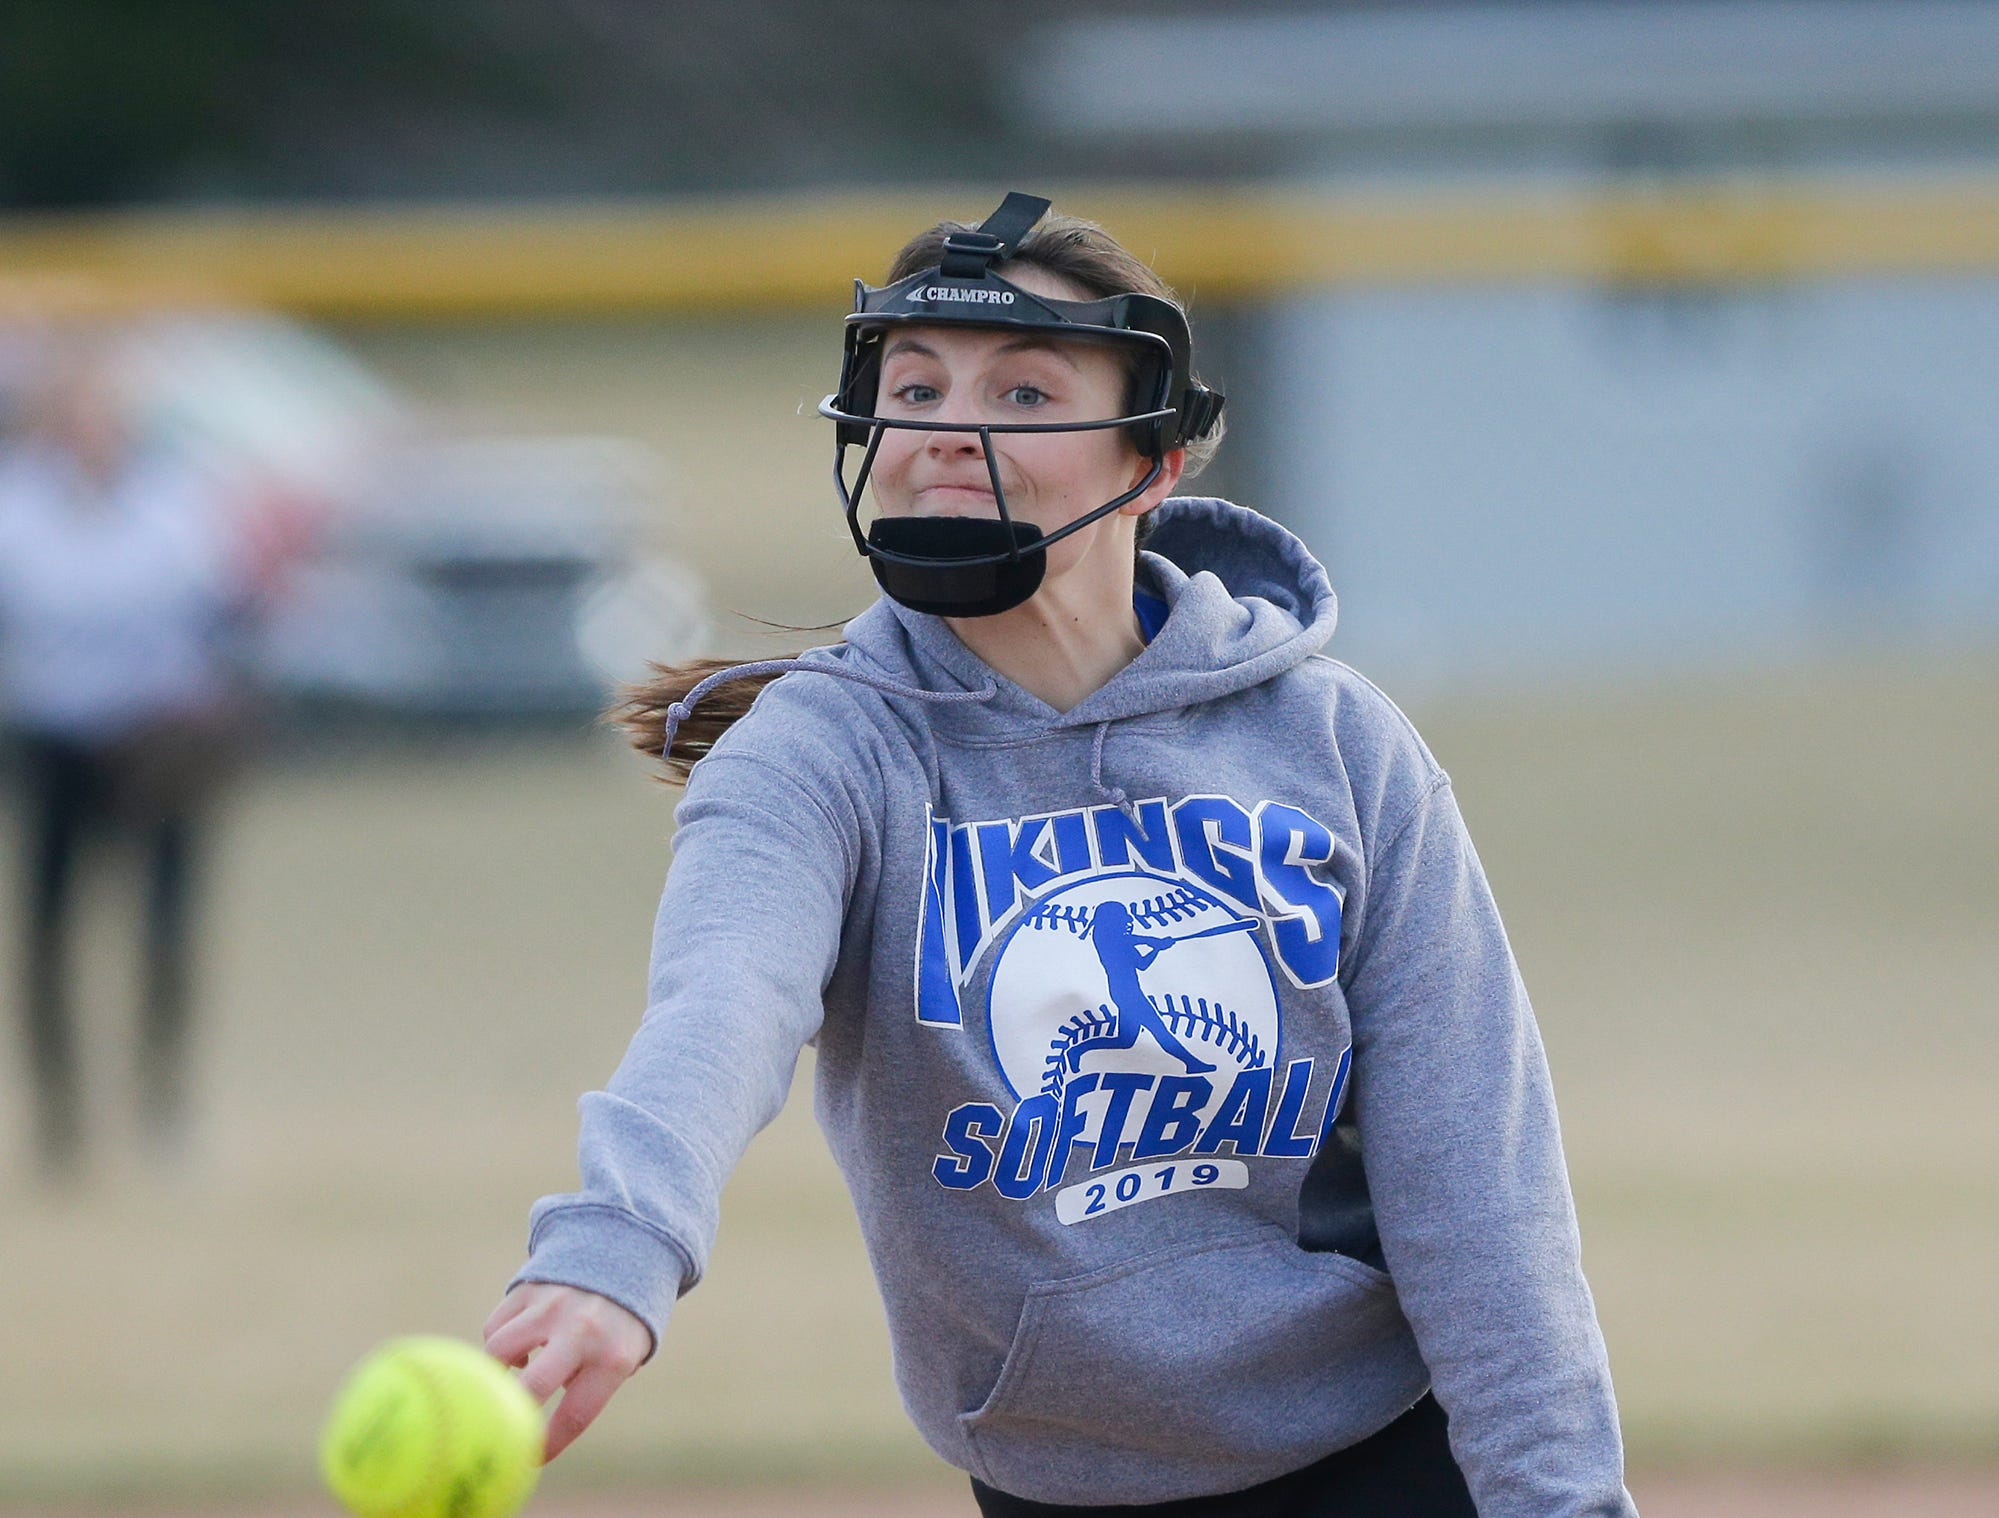 Winnebago Lutheran Academy softball's Shania Shea pitches against Laconia High School April 9, 2019 during their game in Fond du Lac, Wis. Laconia won the game 25-9. Doug Raflik/USA TODAY NETWORK-Wisconsin